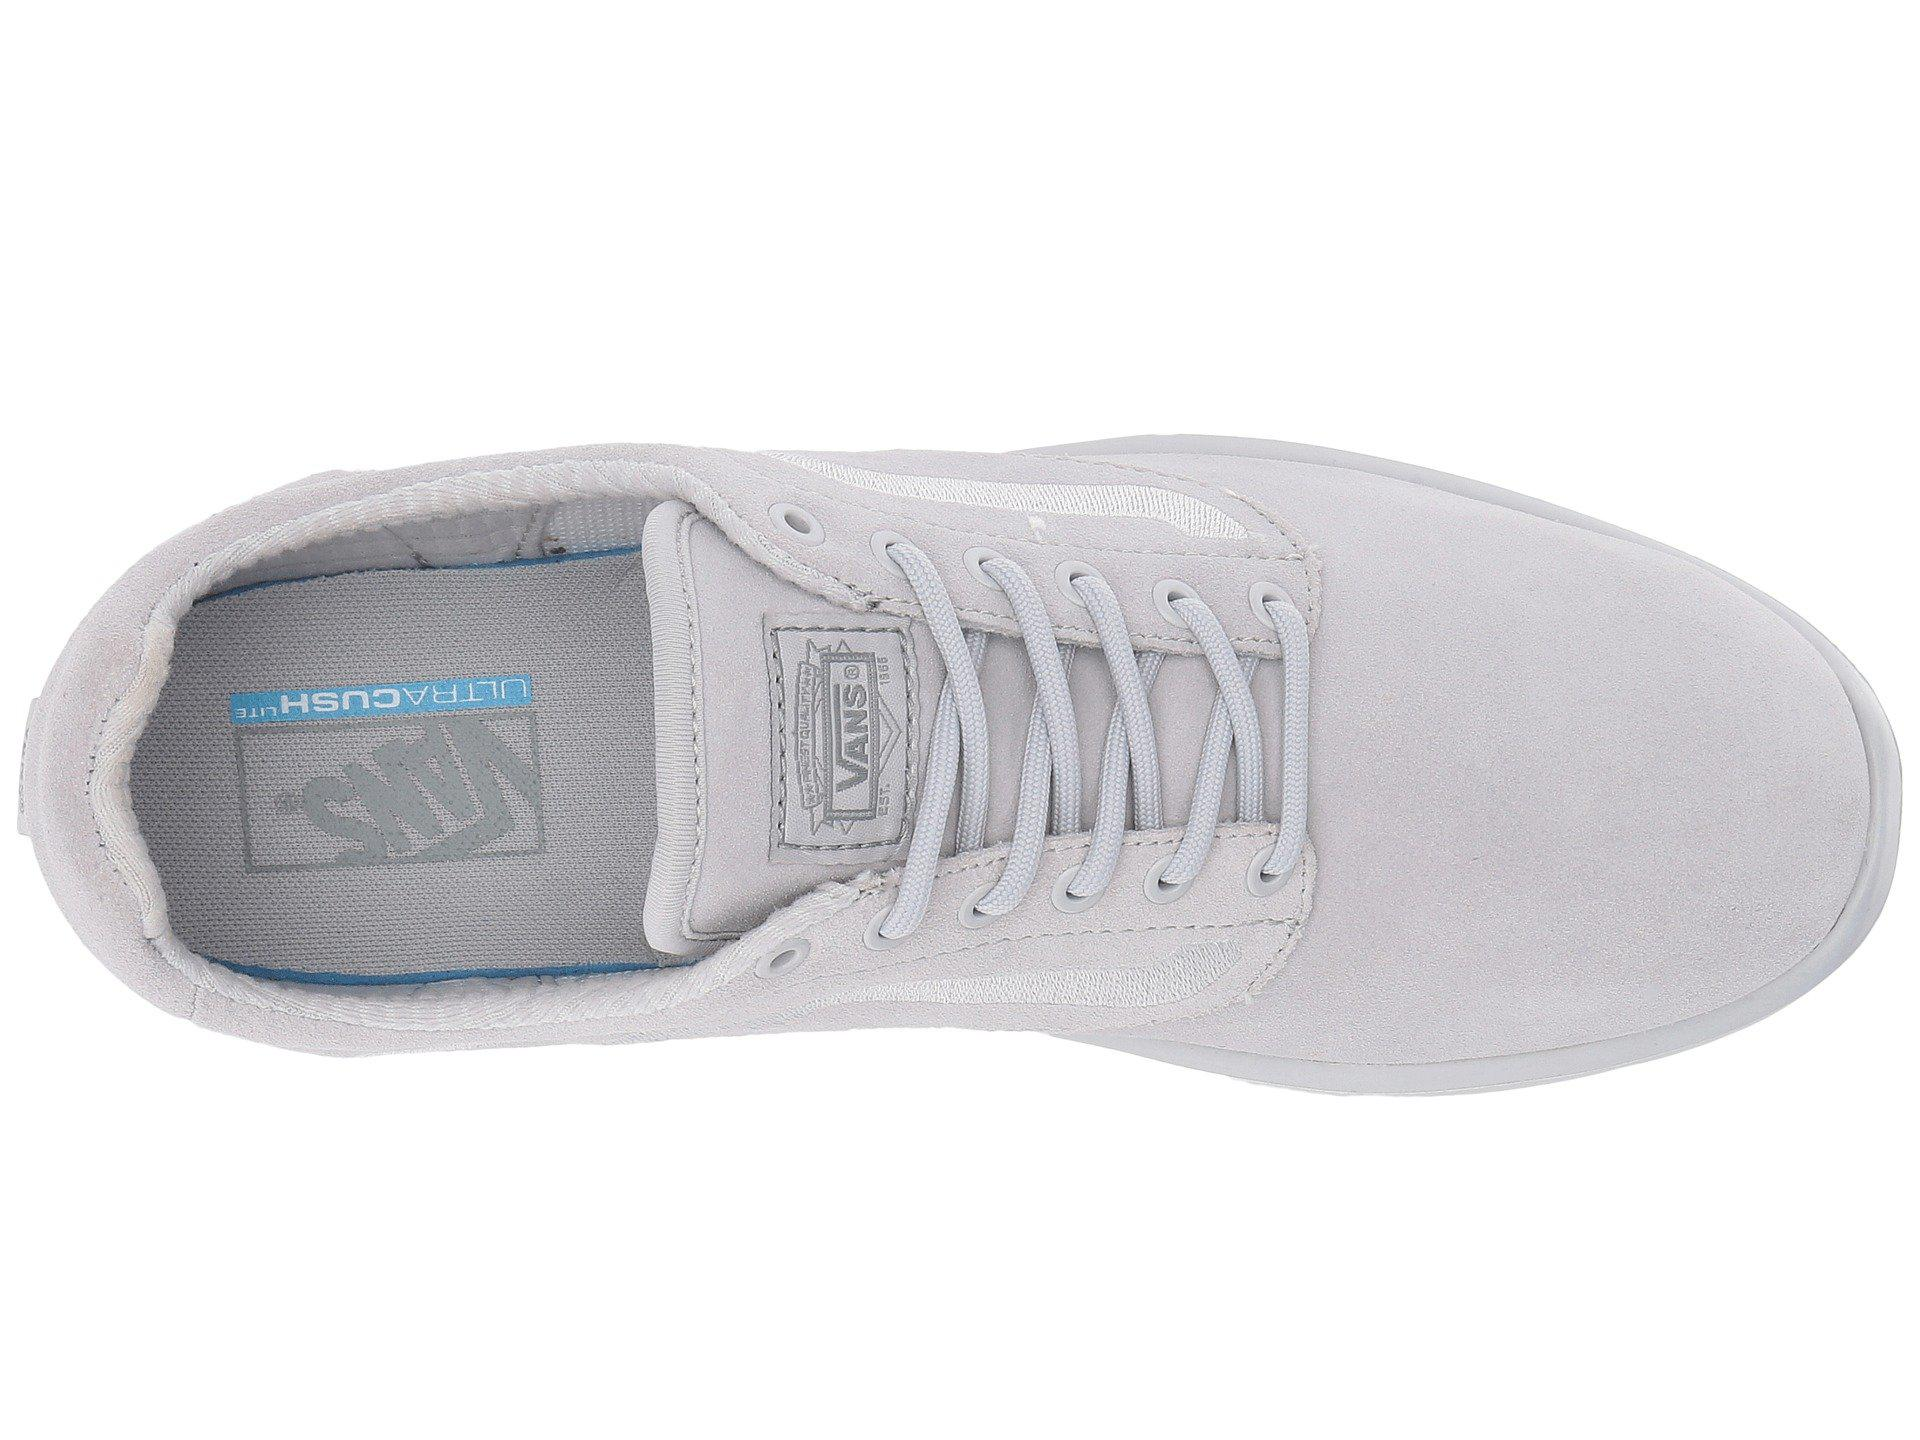 Lyst - Vans Iso 1.5 ((military Mono) Micro Chip) Men s Skate Shoes ... fcd6fa7c0